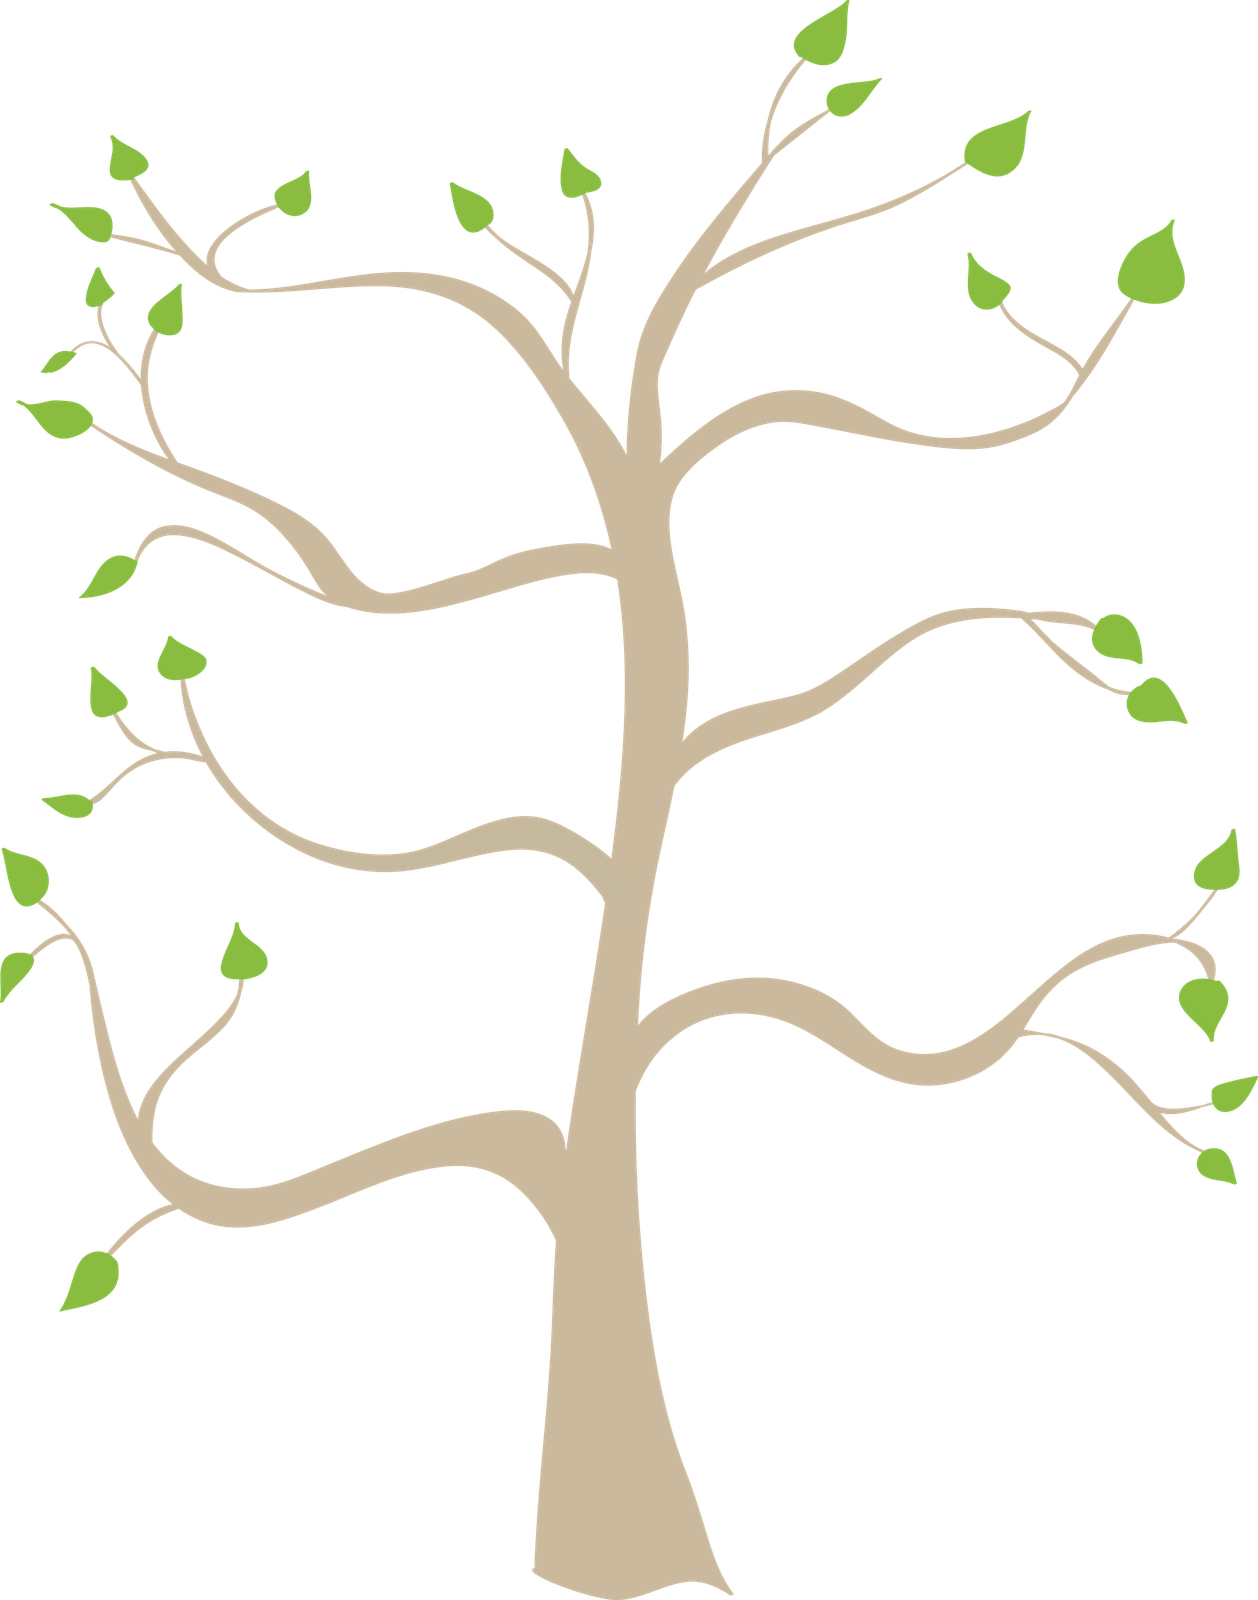 Branch clipart family tree. Clip art related keywords